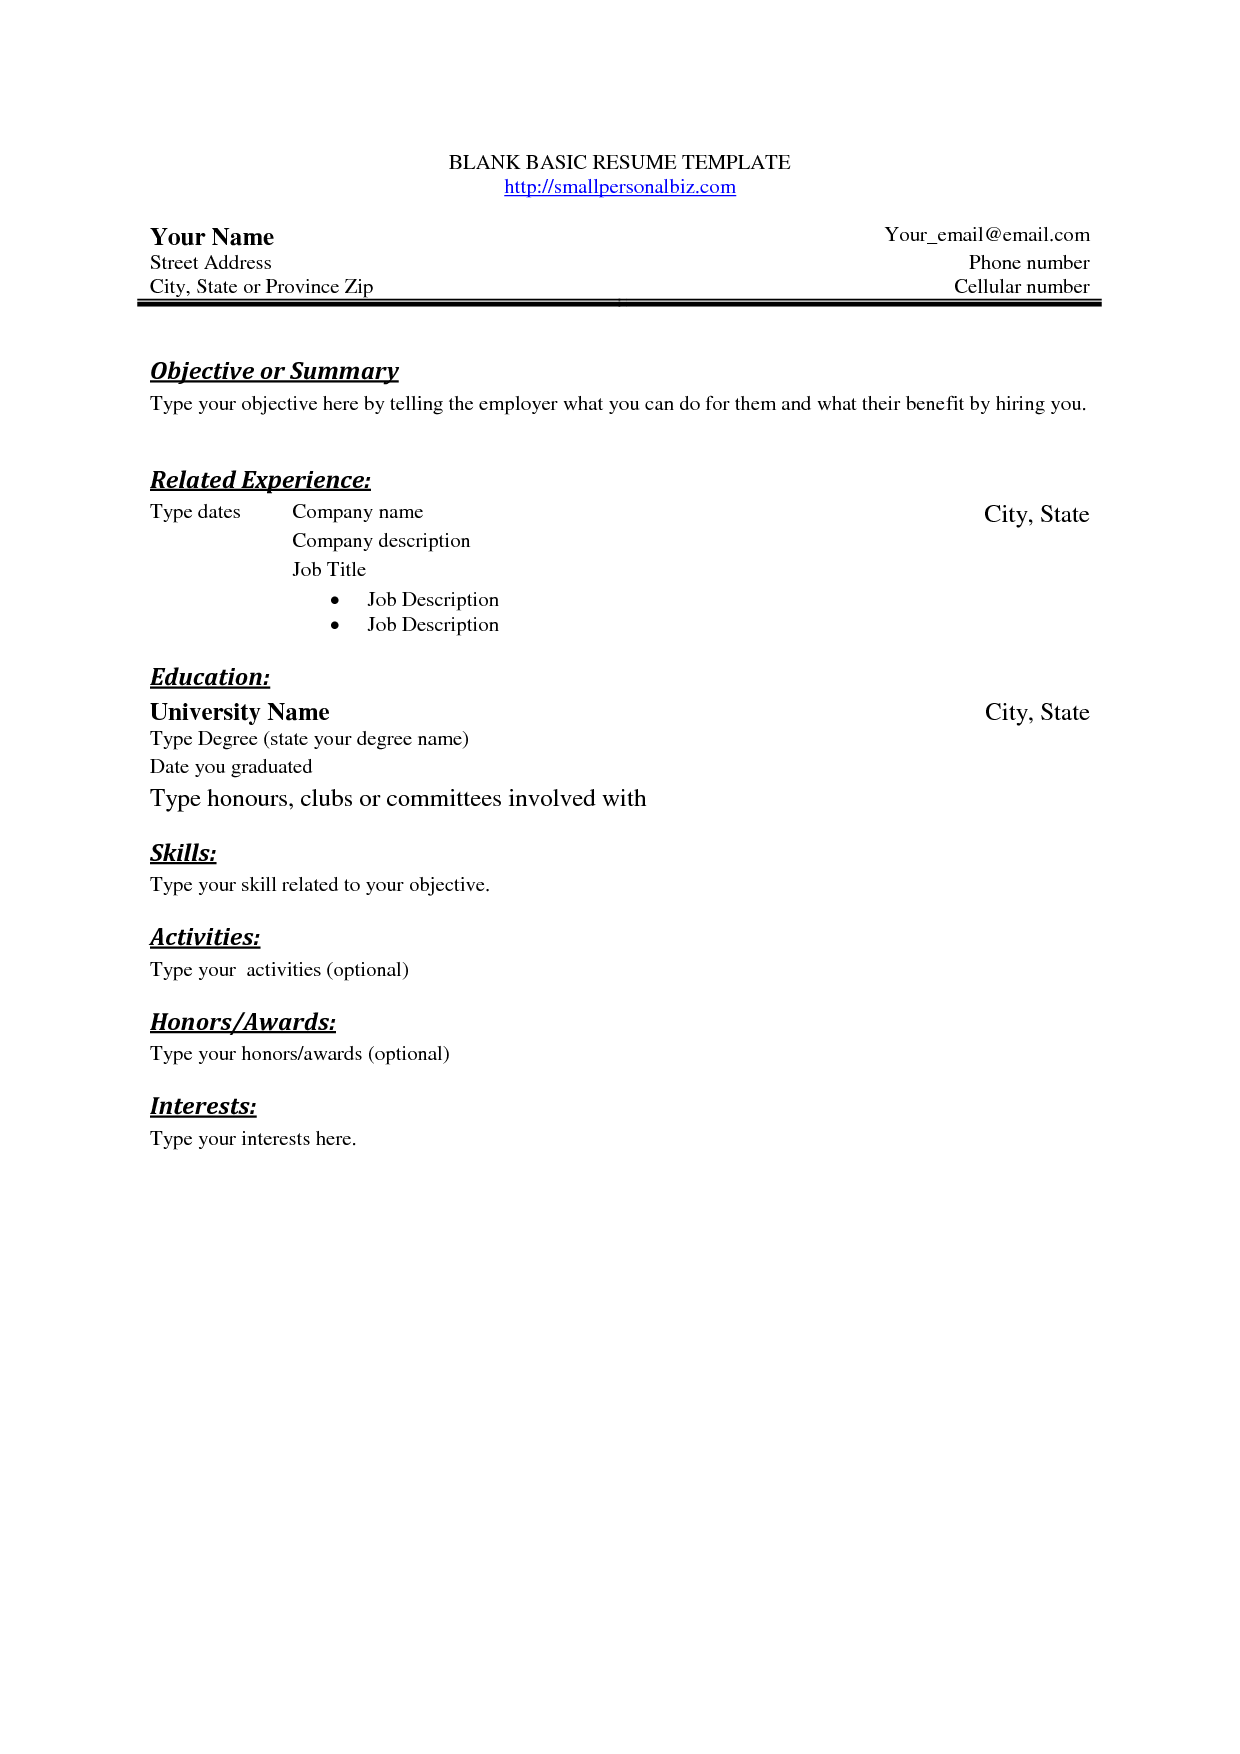 Simple Resume Format Free Basic Blank Resume Template Free Basic Sample